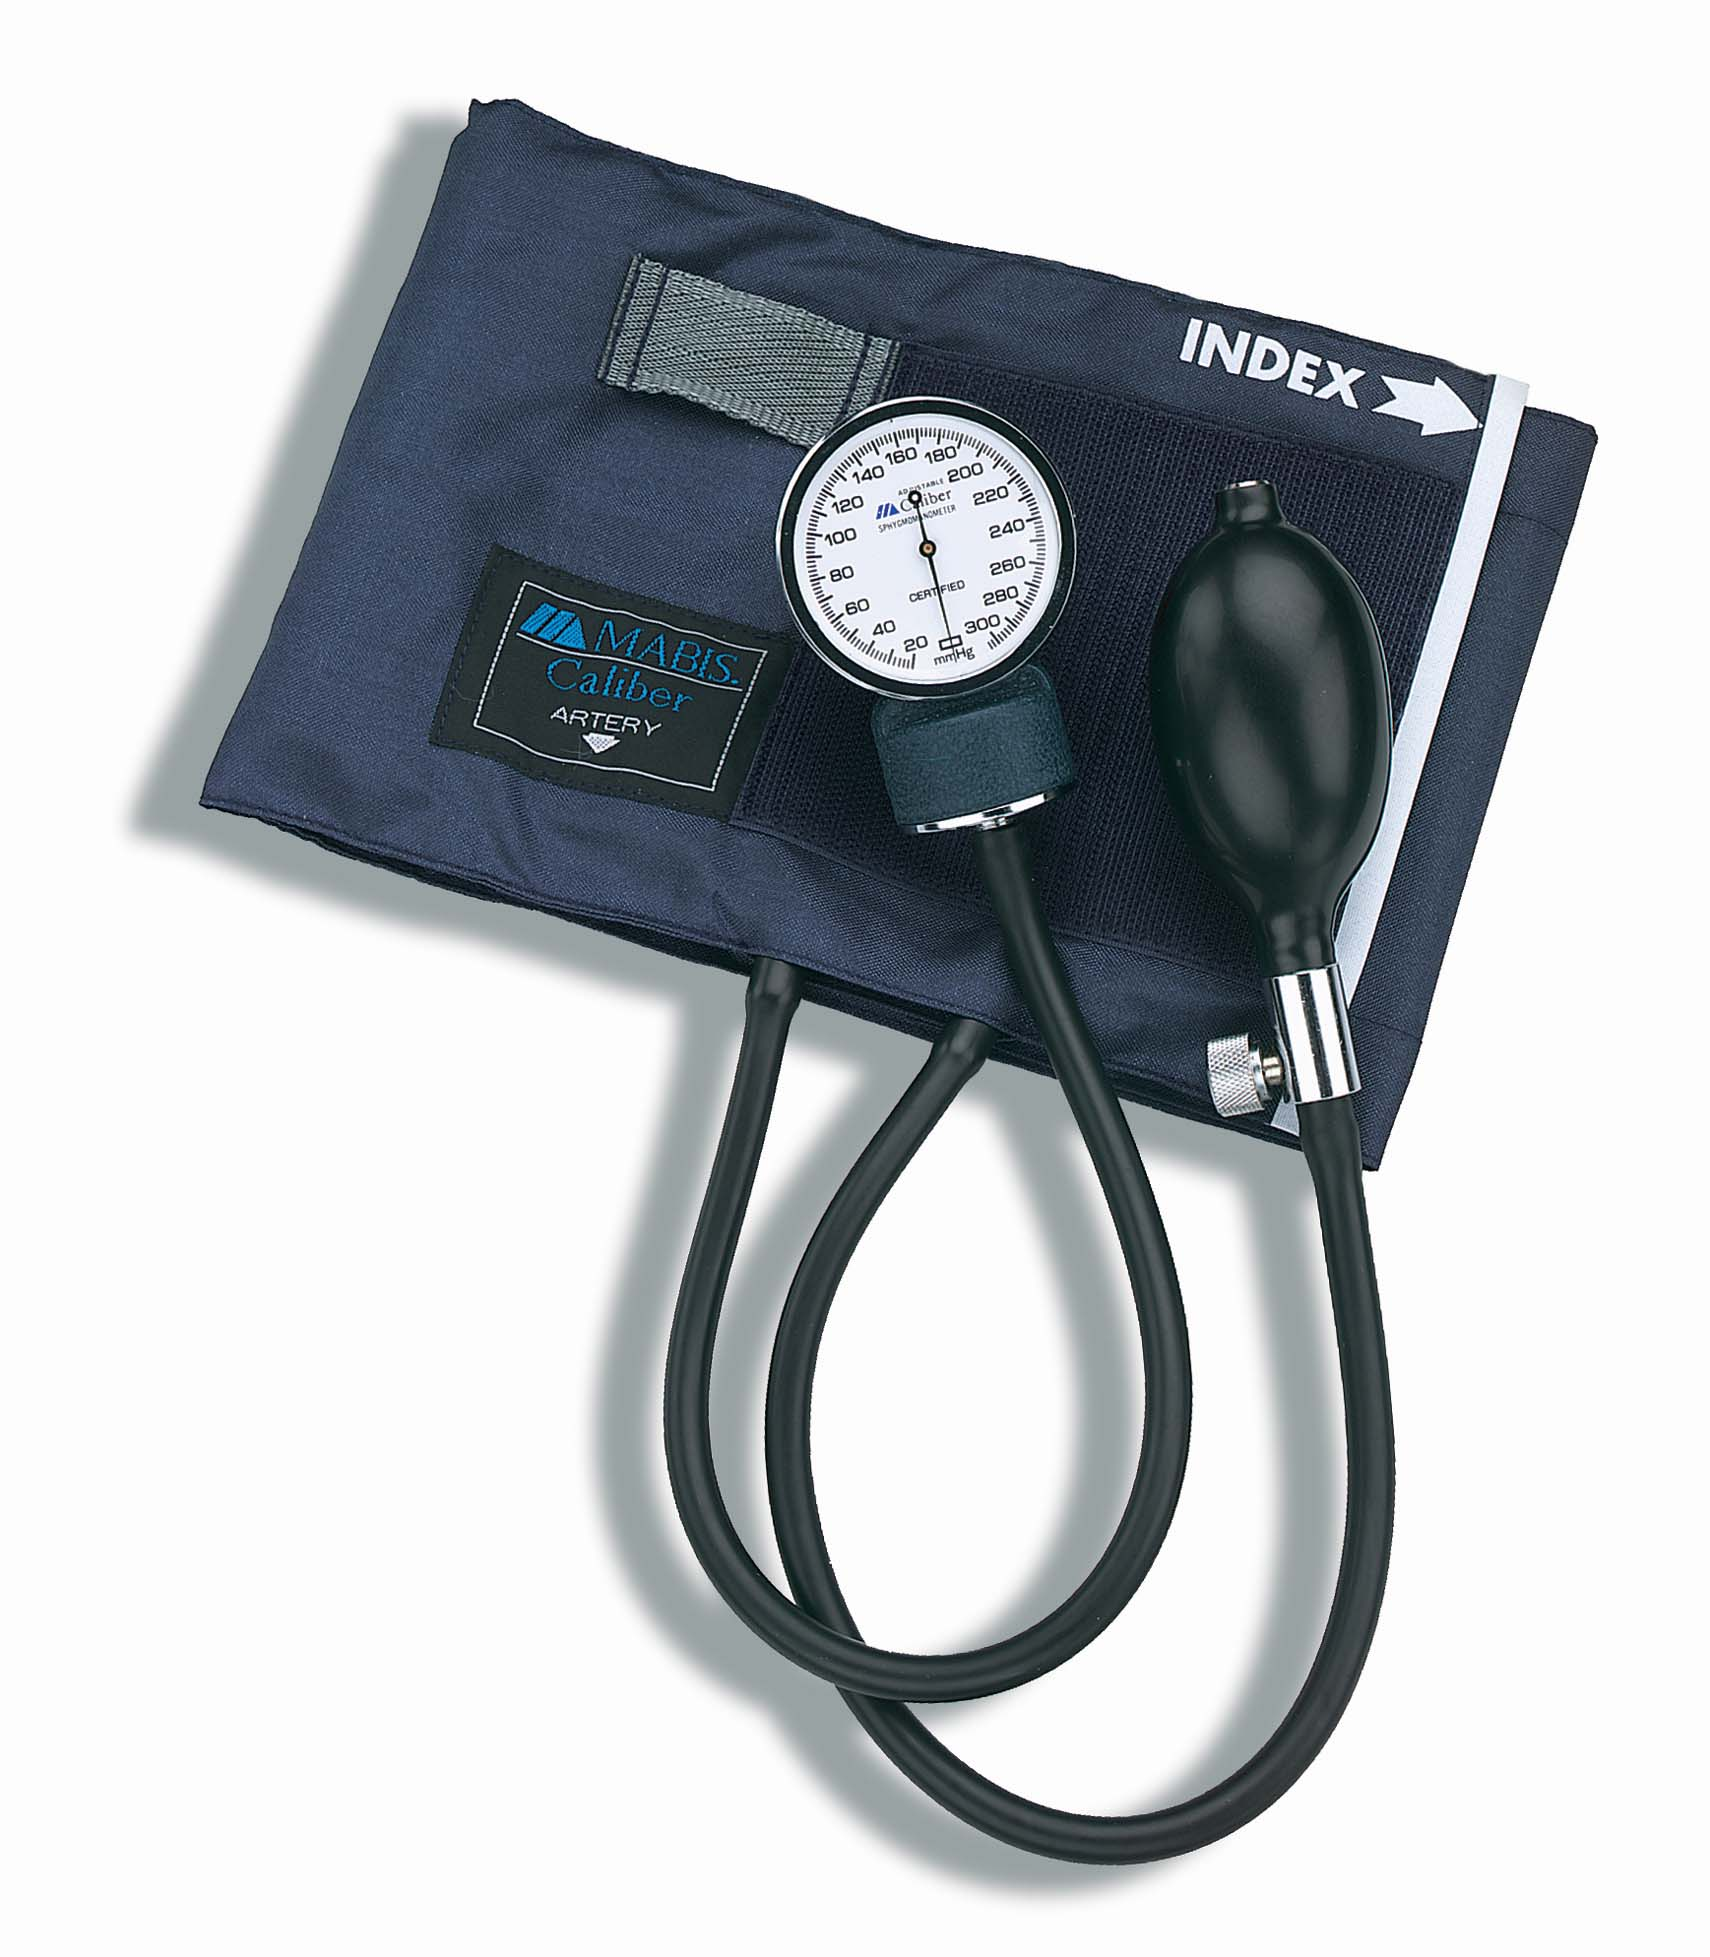 caliber-adjustable-aneroid-sphygmomanometer-blue-nylon-cuff-adult-01-133-011-lr.jpg